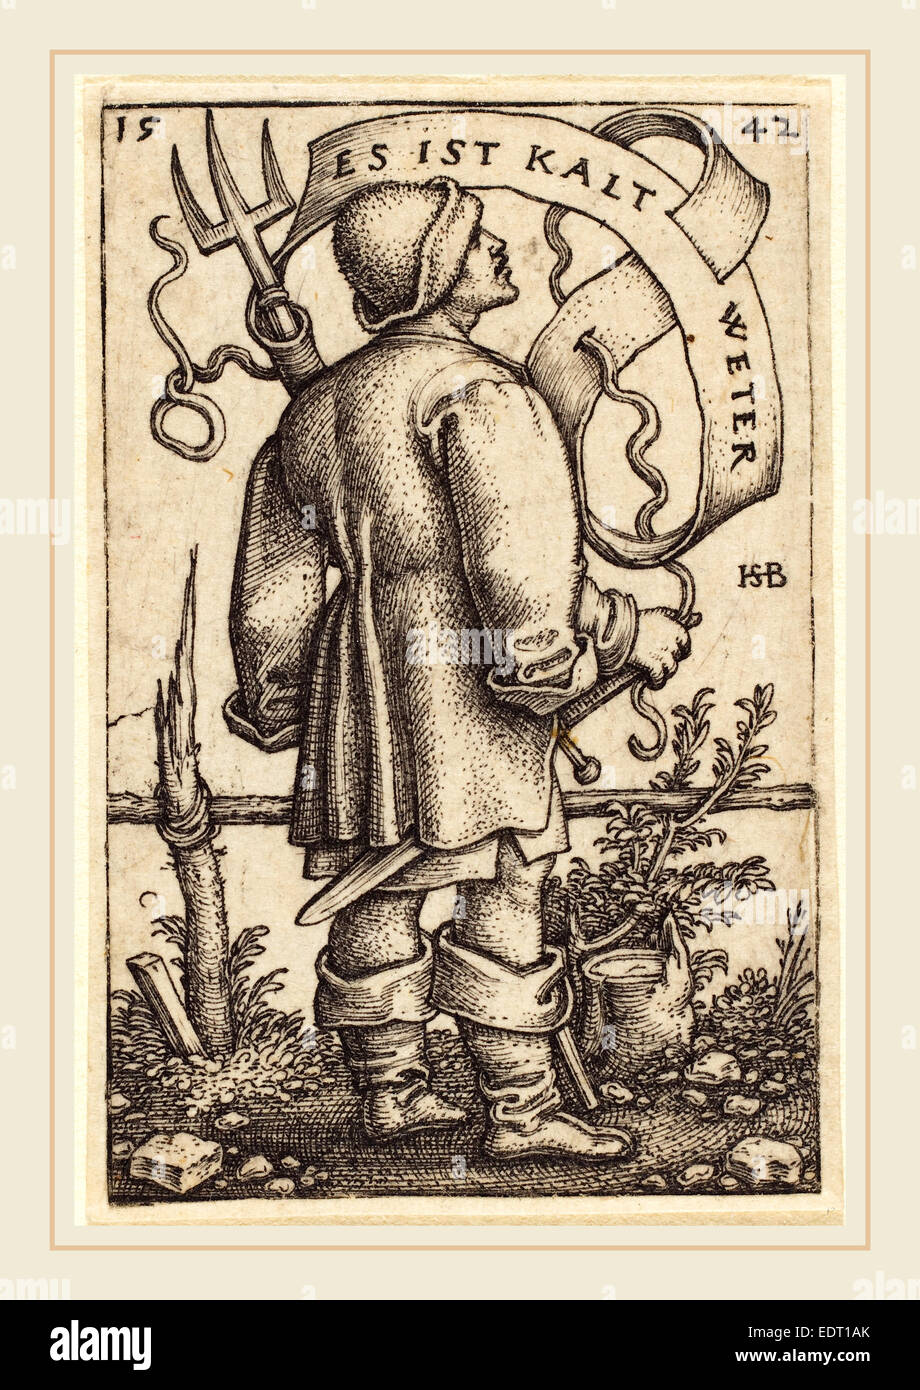 Sebald Beham (German, 1500-1550), The Weather Peasant: 'Es ist Kalt Weter', 1542, engraving on laid paper - Stock Image